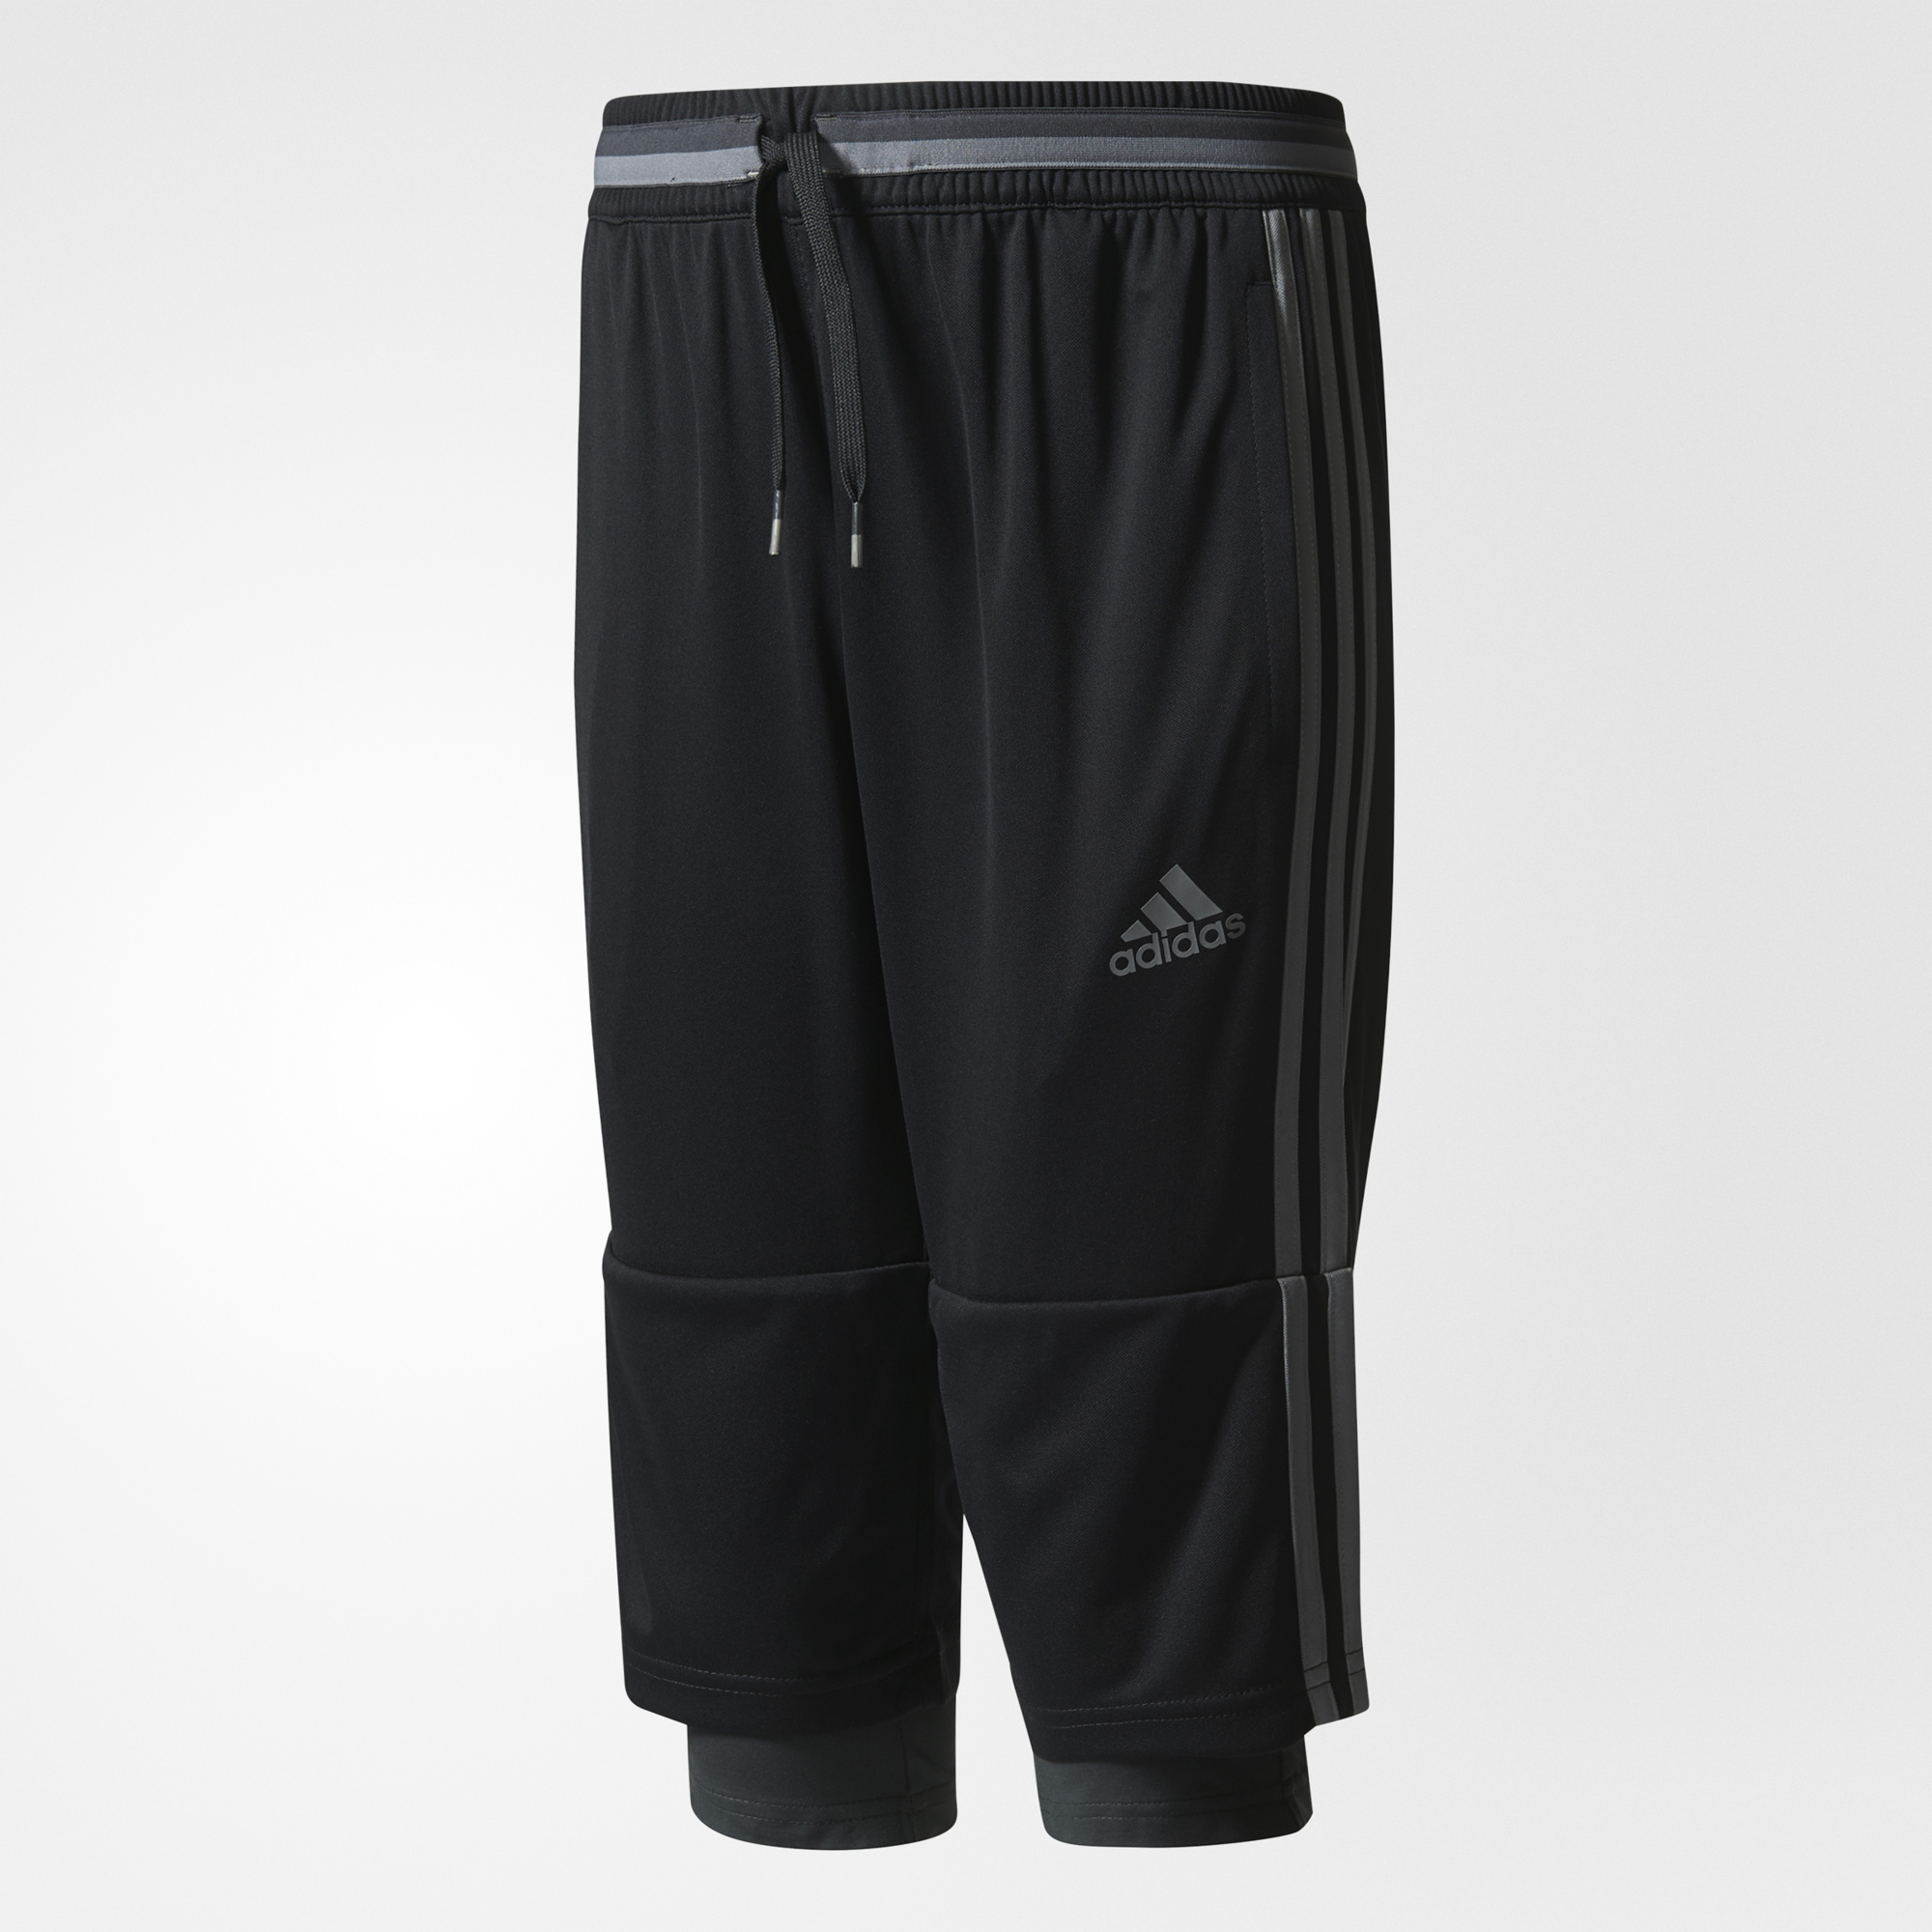 Available from 10.11 Adidas Comprehensive training trousers AN9847 воланы для бадминтона adidas d training 79 перо быстрая скорость